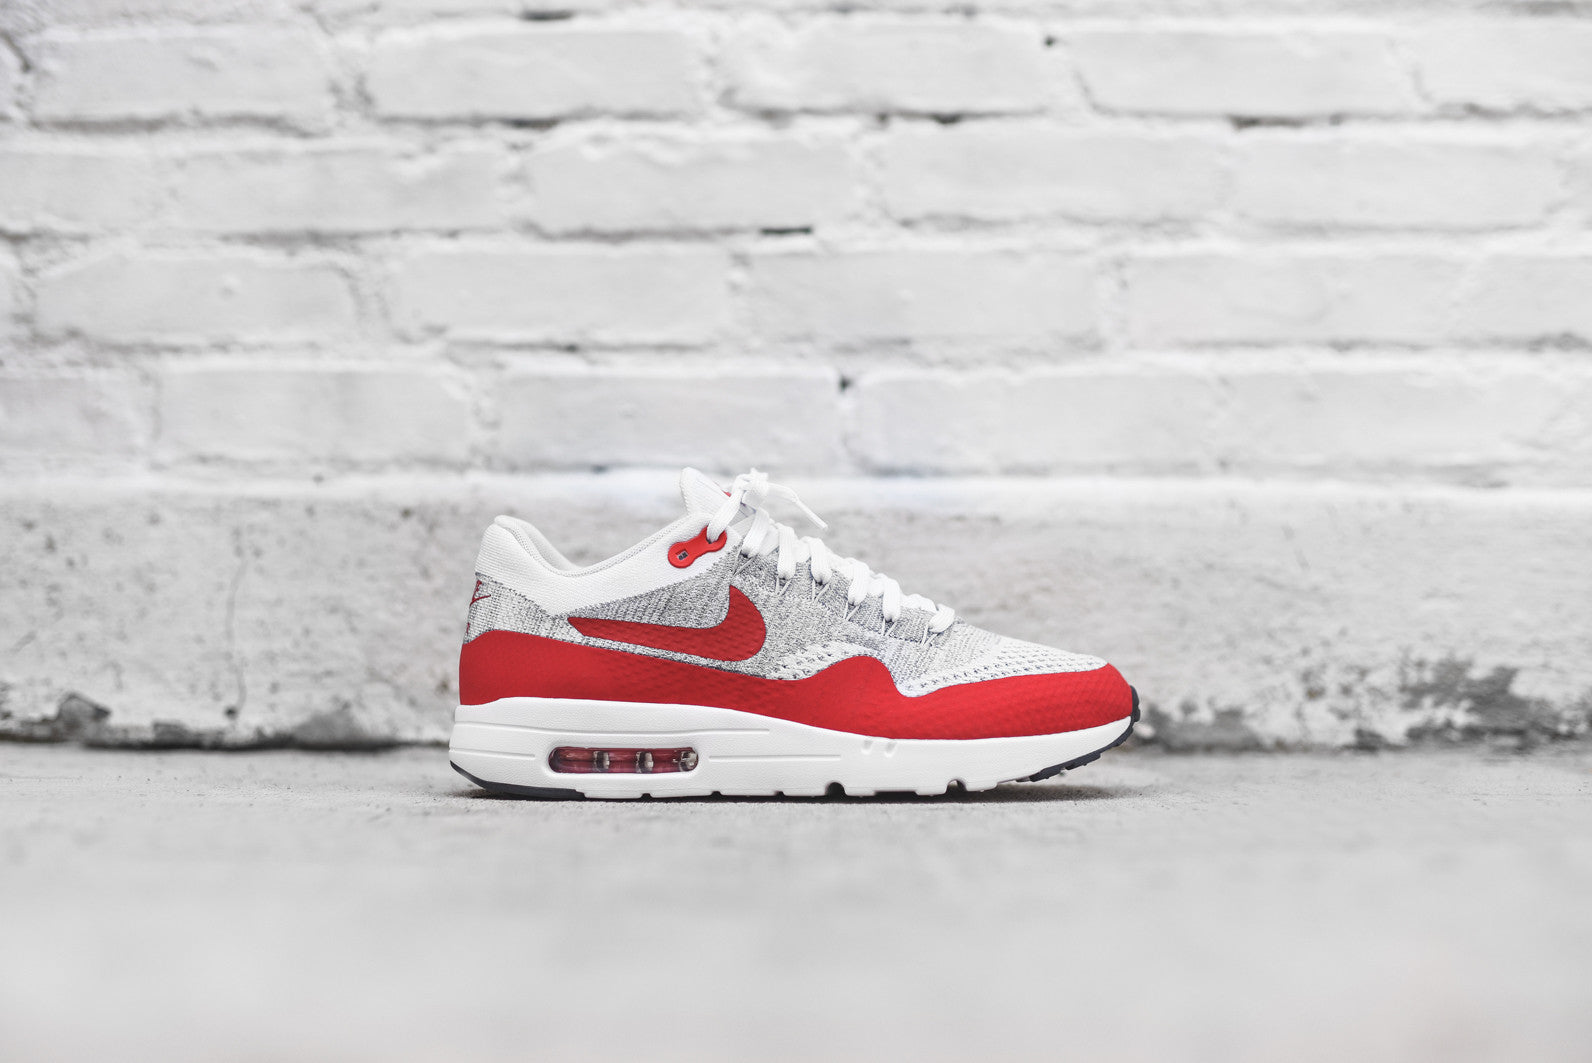 Nike WMNS Air Max 1 Flyknit - Red / White